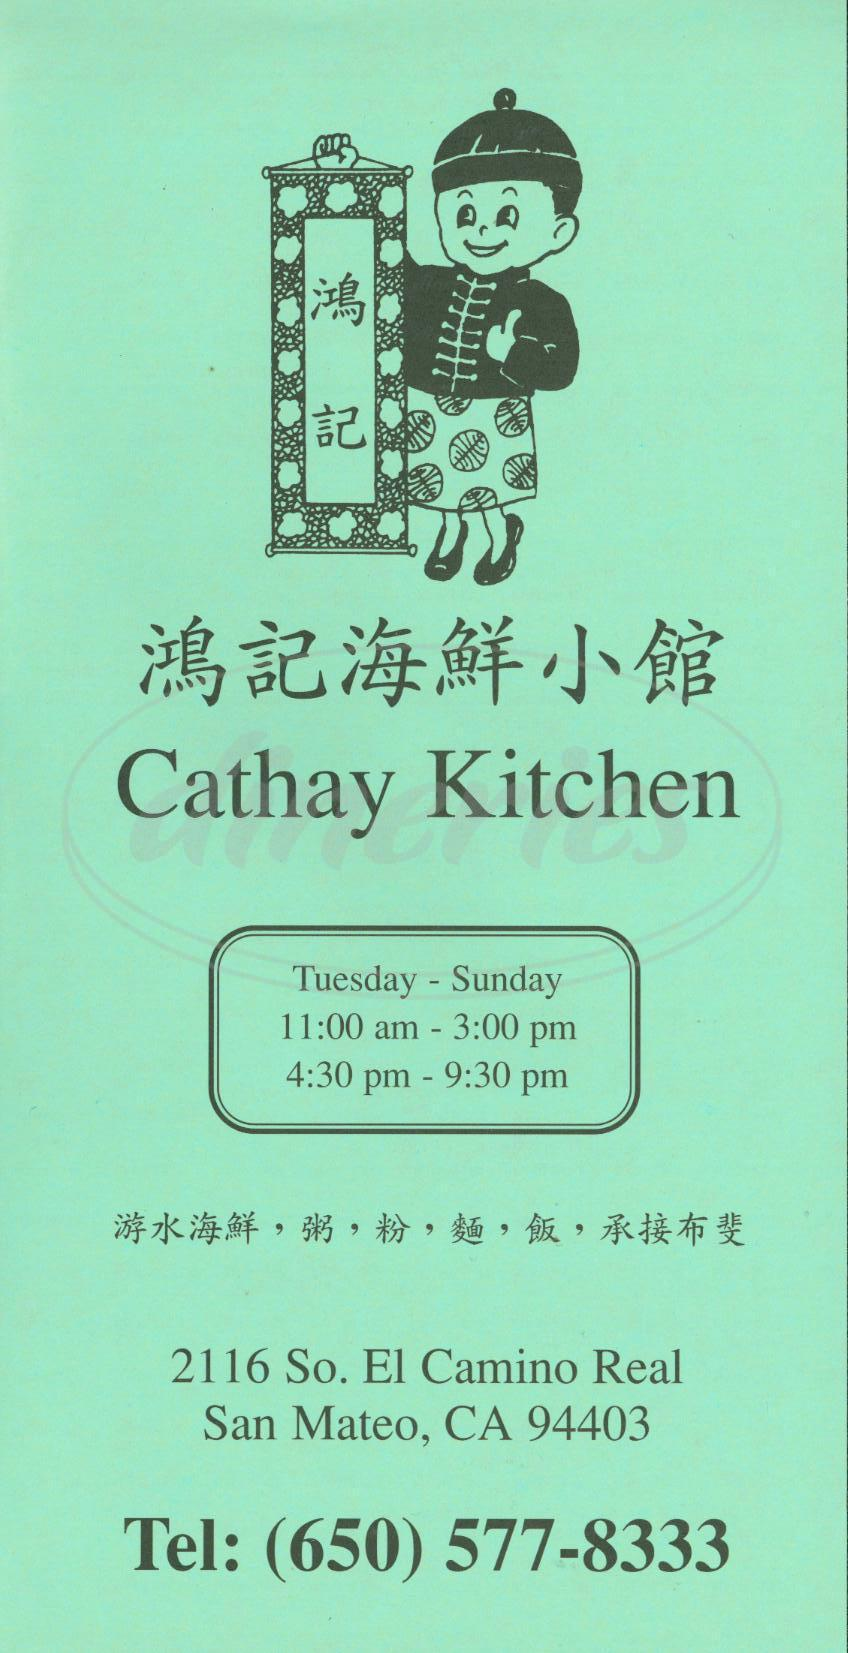 menu for Cathay Kitchen